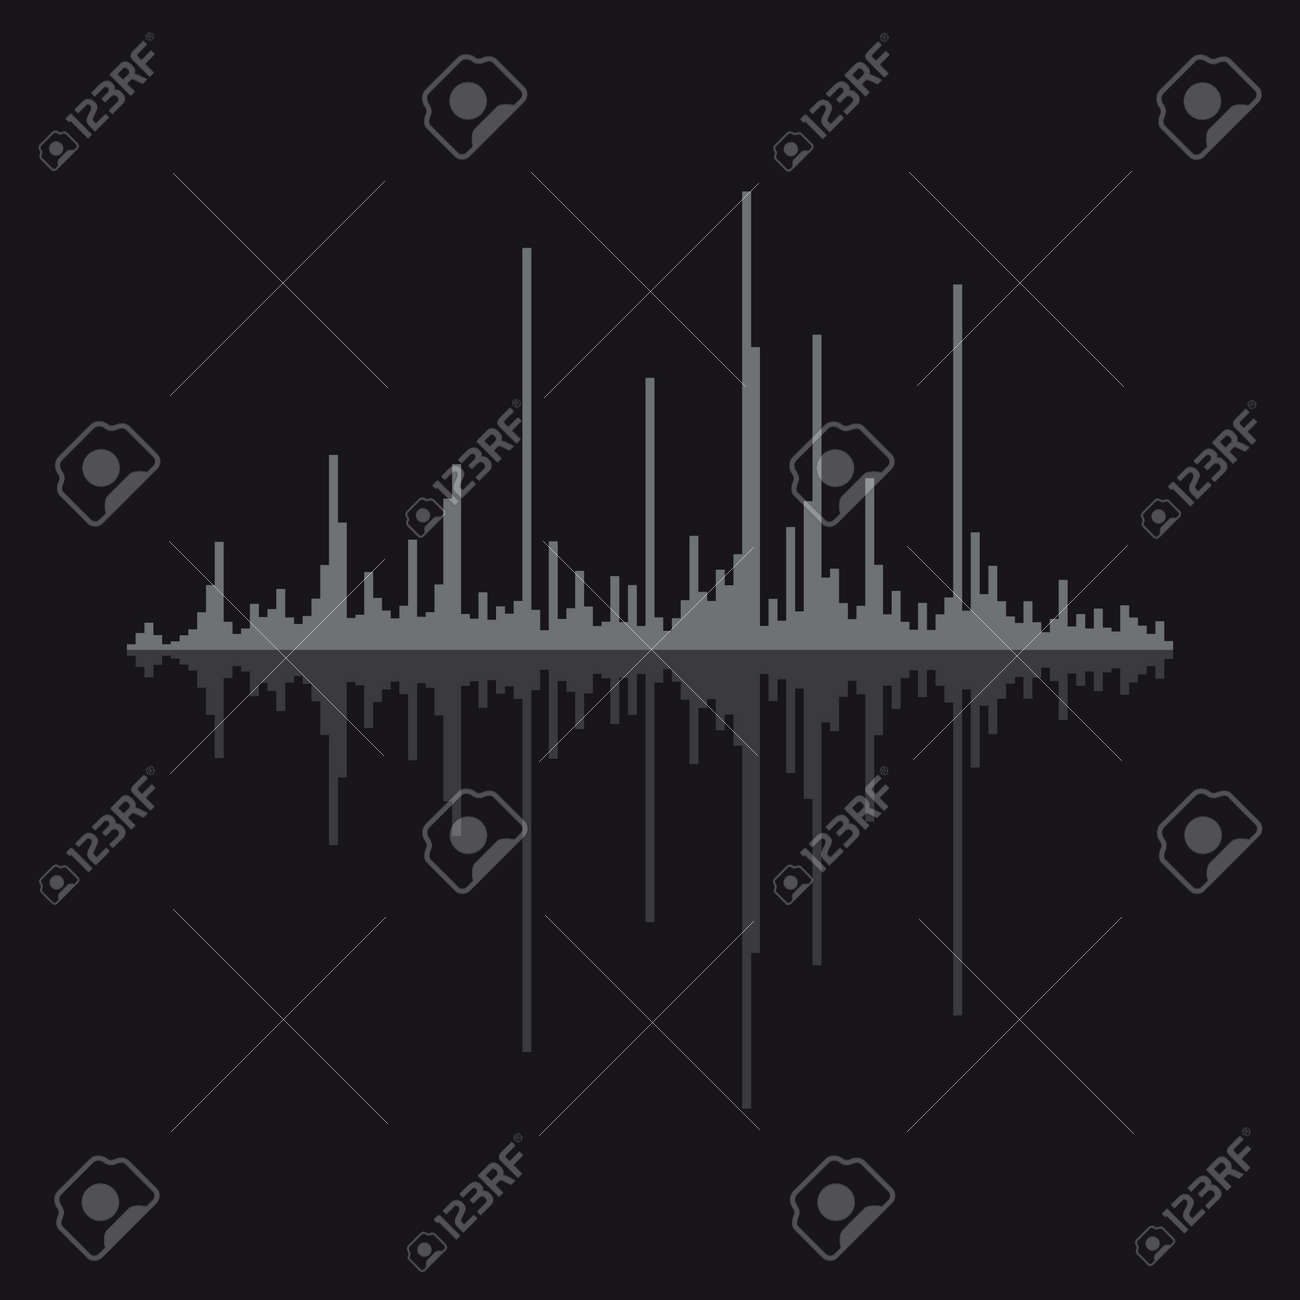 Sound wave vector illustration isolated on background. - 172746601